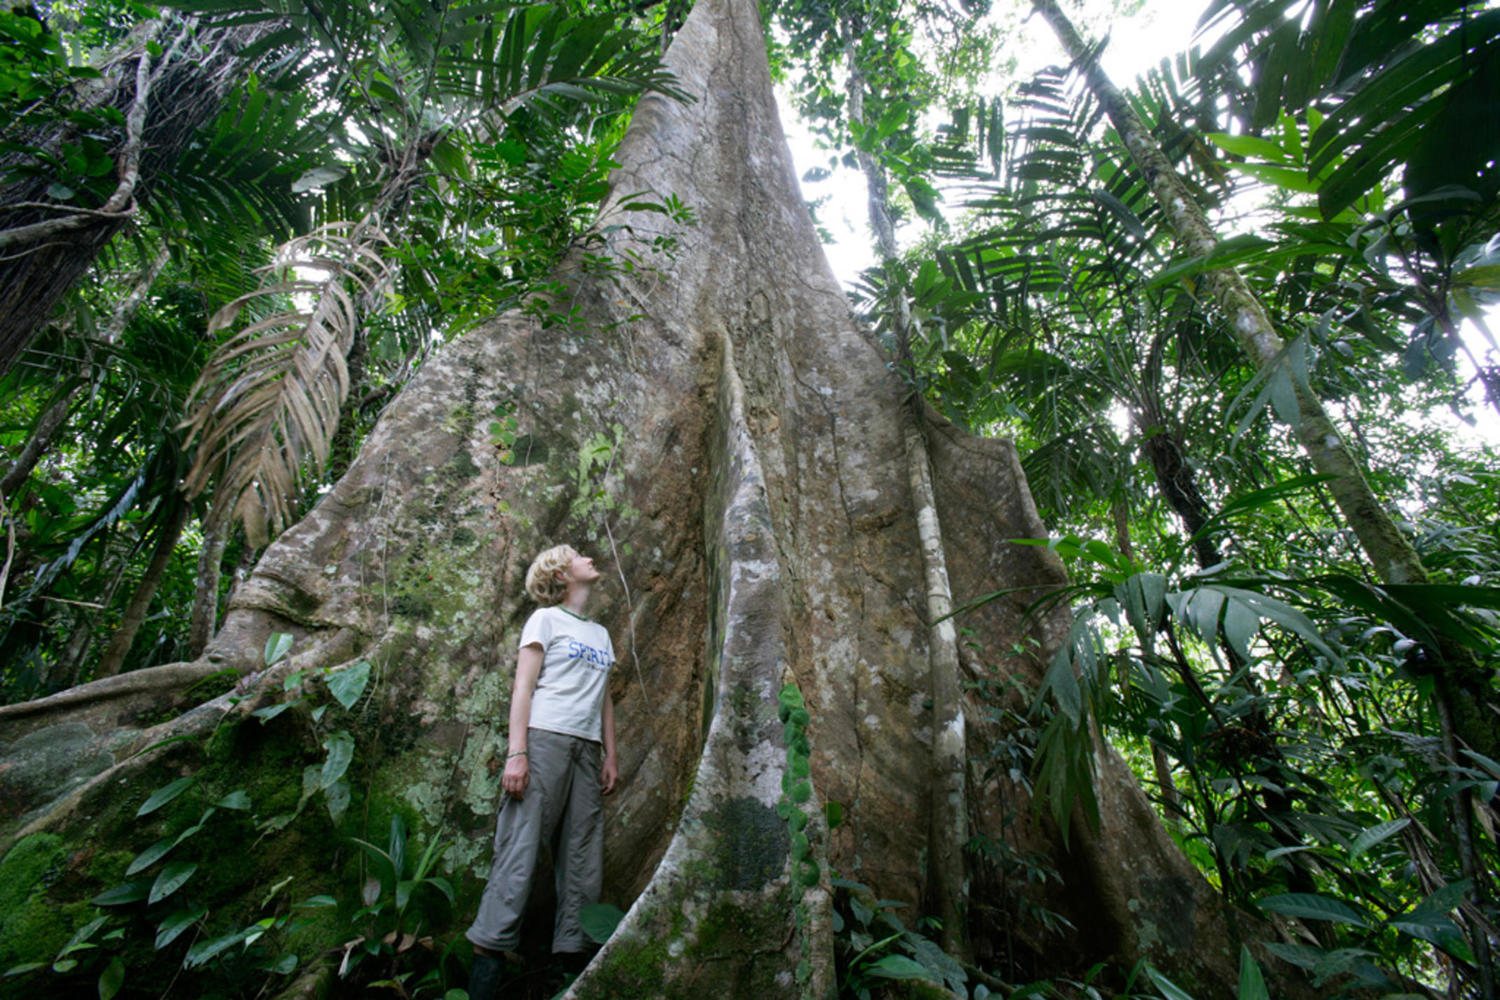 Enormous trees in the Bananito rainforest - some of which can be climbed